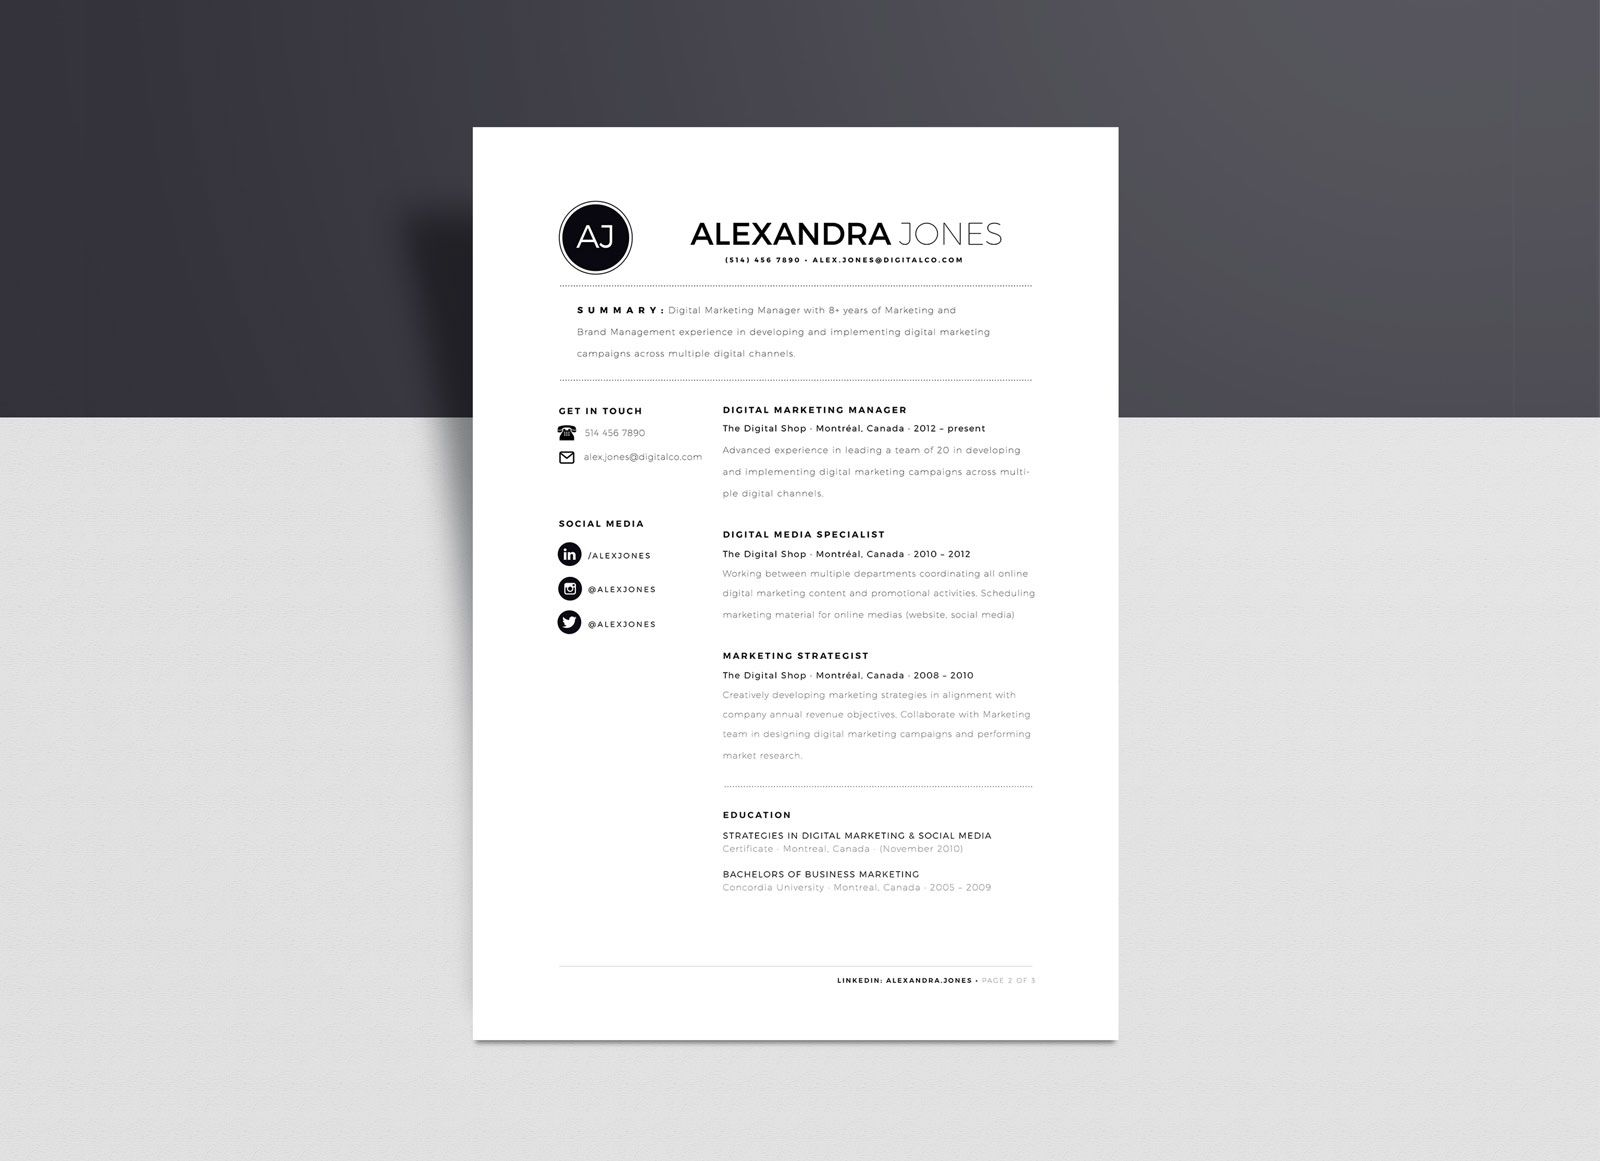 005 Top Resume Template On Word Idea  2007 Download 2016 How To Get 2010Full